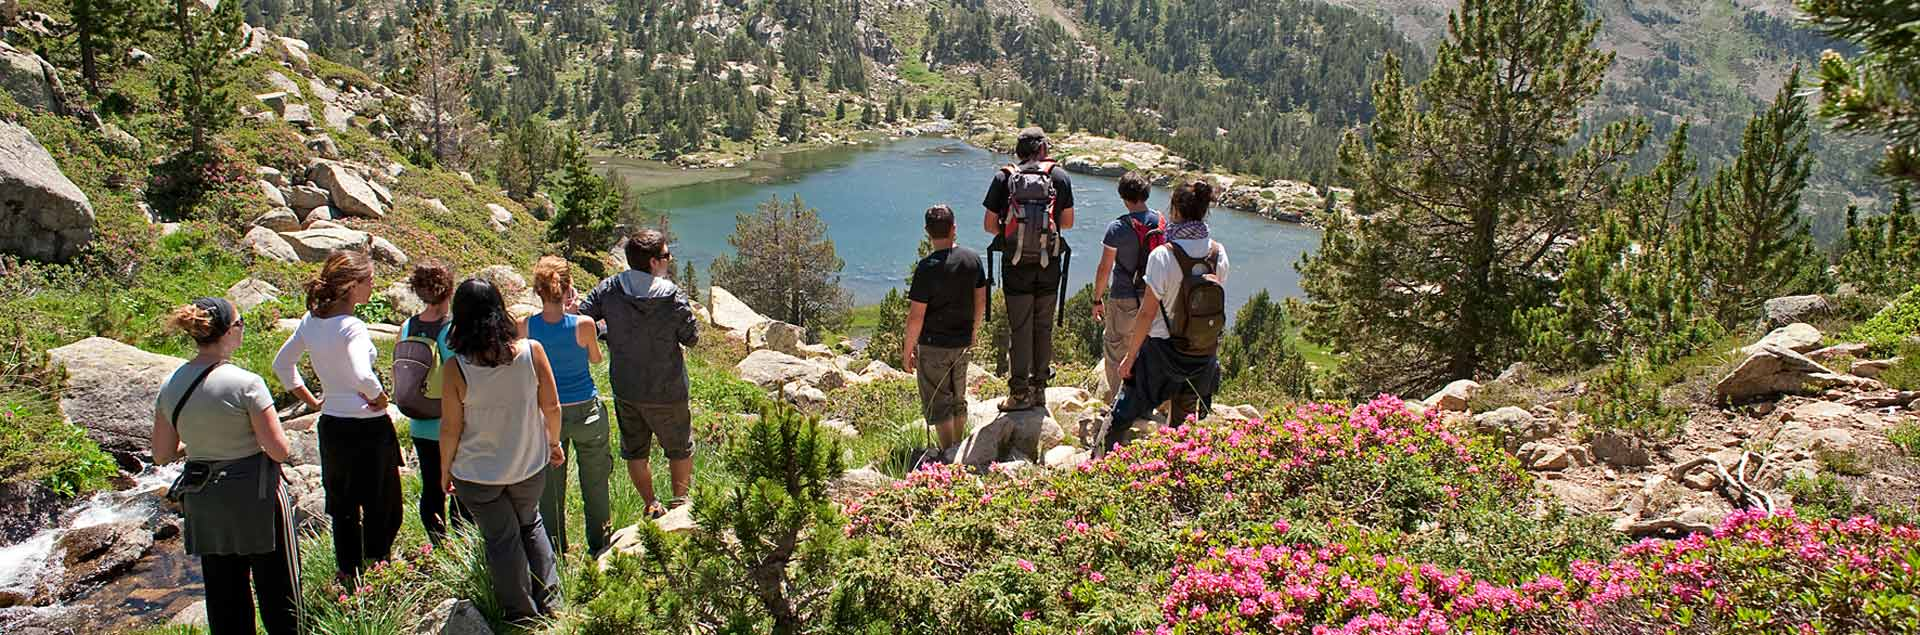 hotels in soldeu for guided hiking